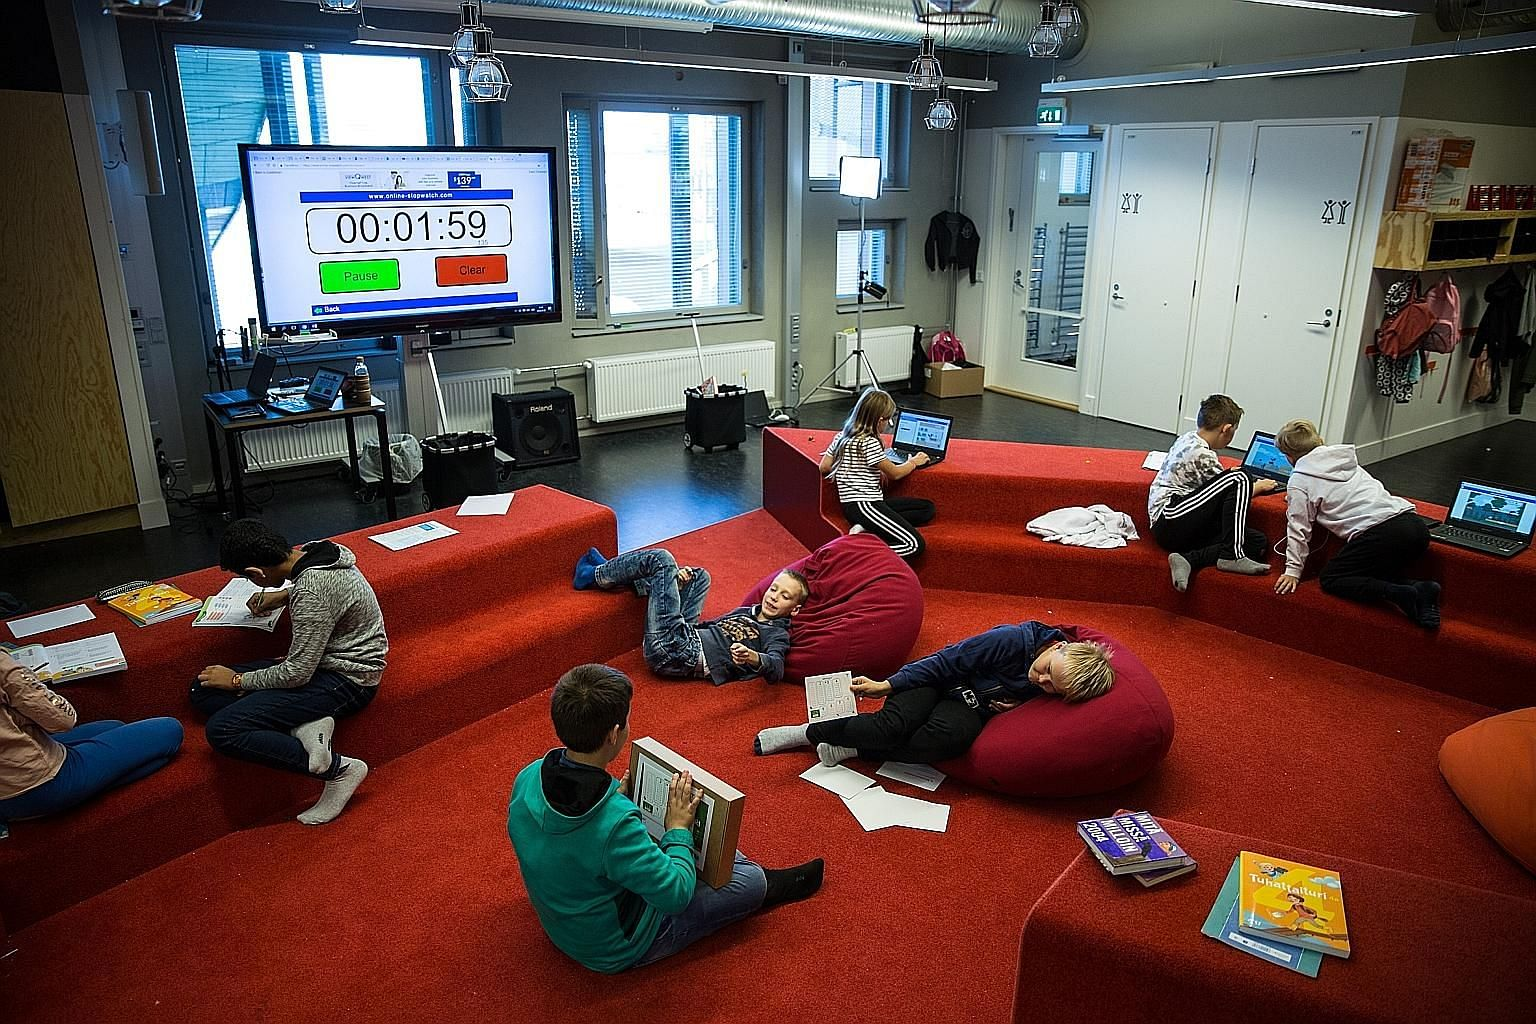 Students from Kalasatama Comprehensive School having a mathematics lesson. Teachers say the open layout and desk-less learning, which more schools in Finland are adopting, help children - both mainstream and special needs - enjoy learning and focus b